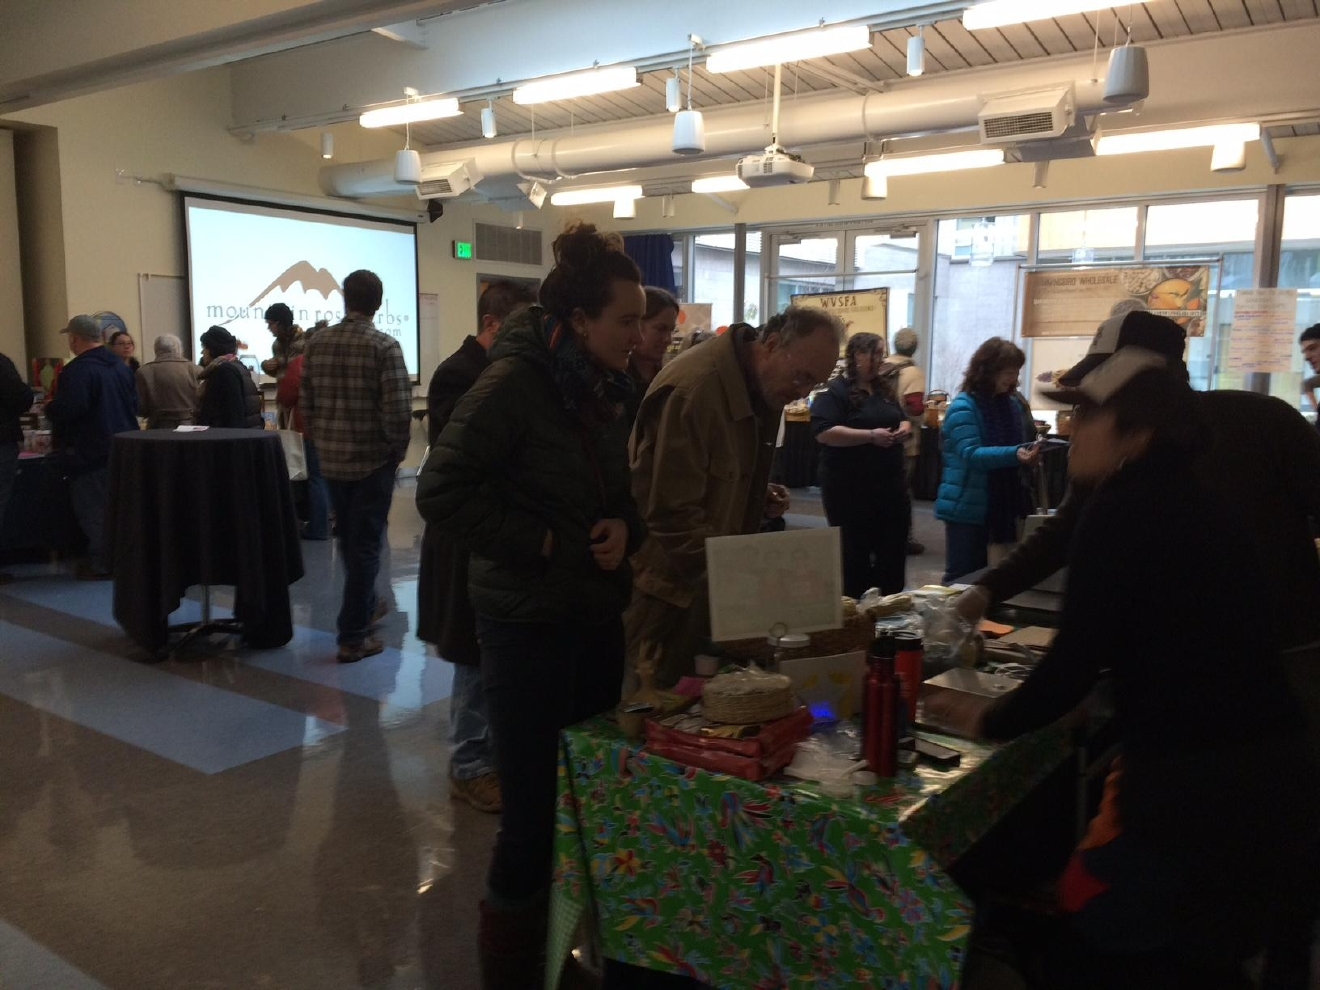 Fermented food fans gathered at Lane Community College Saturday, Jan. 14, 2017 for the annual festival. Participants tasted some of the latest local creations and learned about the fermentation process. (SBG photo)